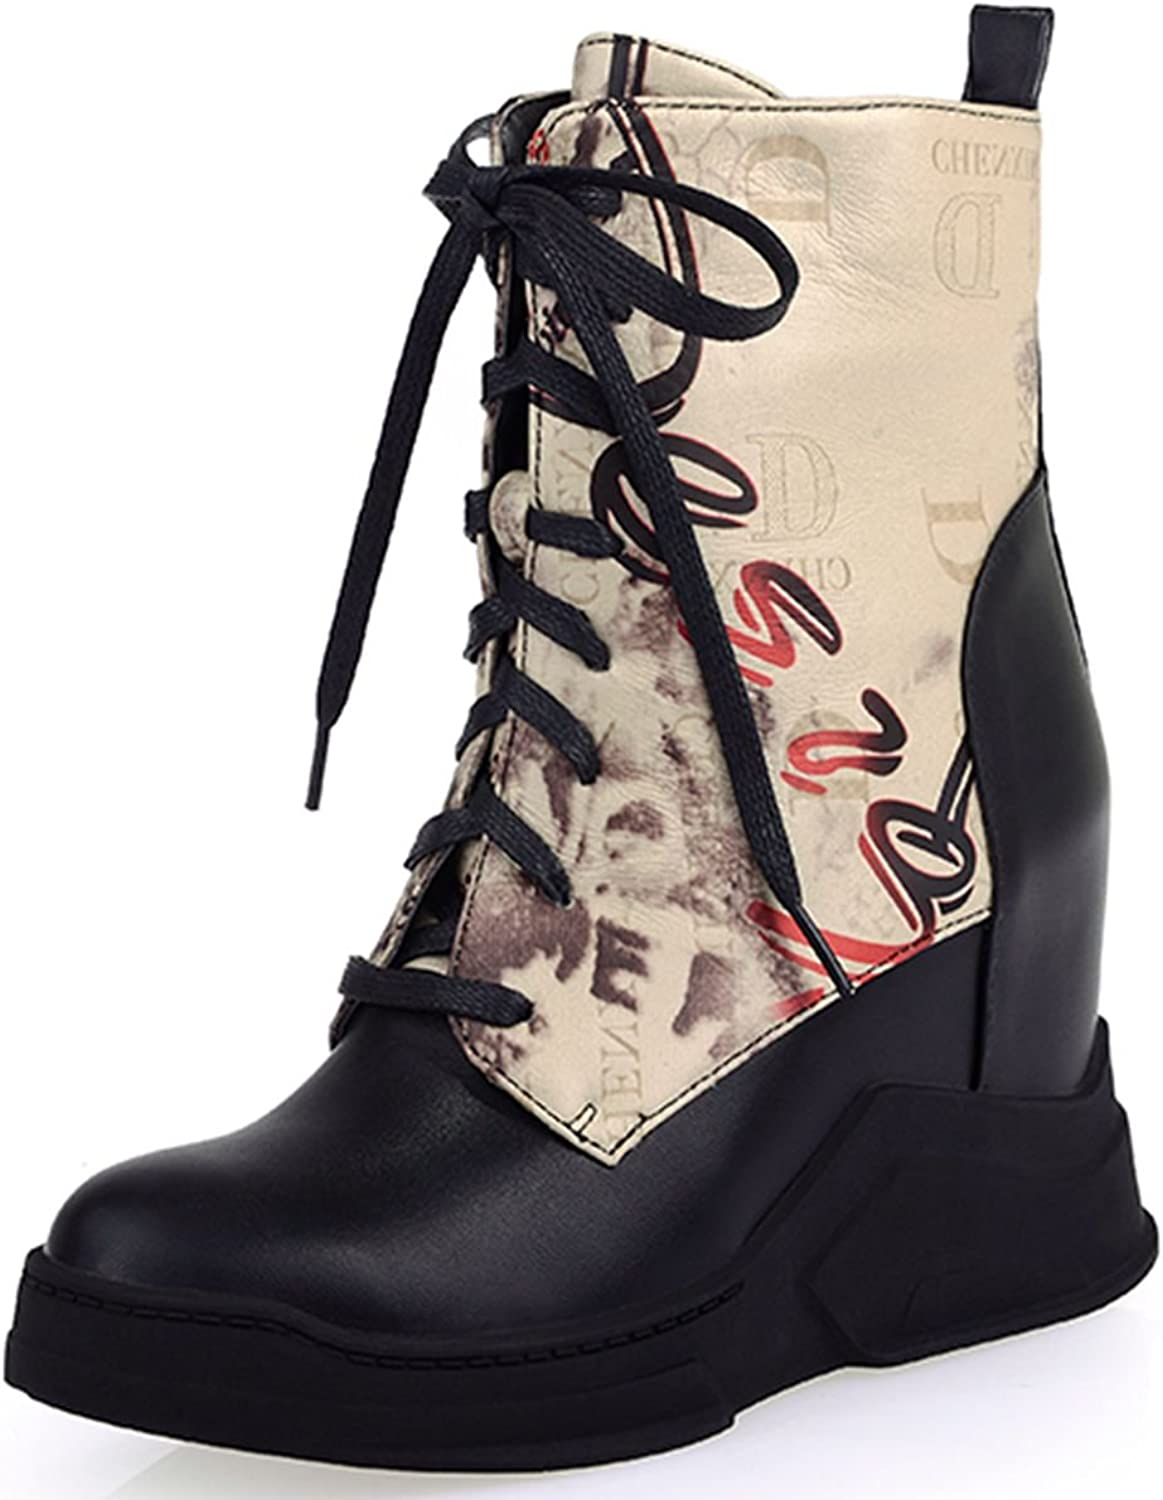 DoraTasia Synthetic Printed Ankle Calf Mid Calf Lace up Women's Platform Boots